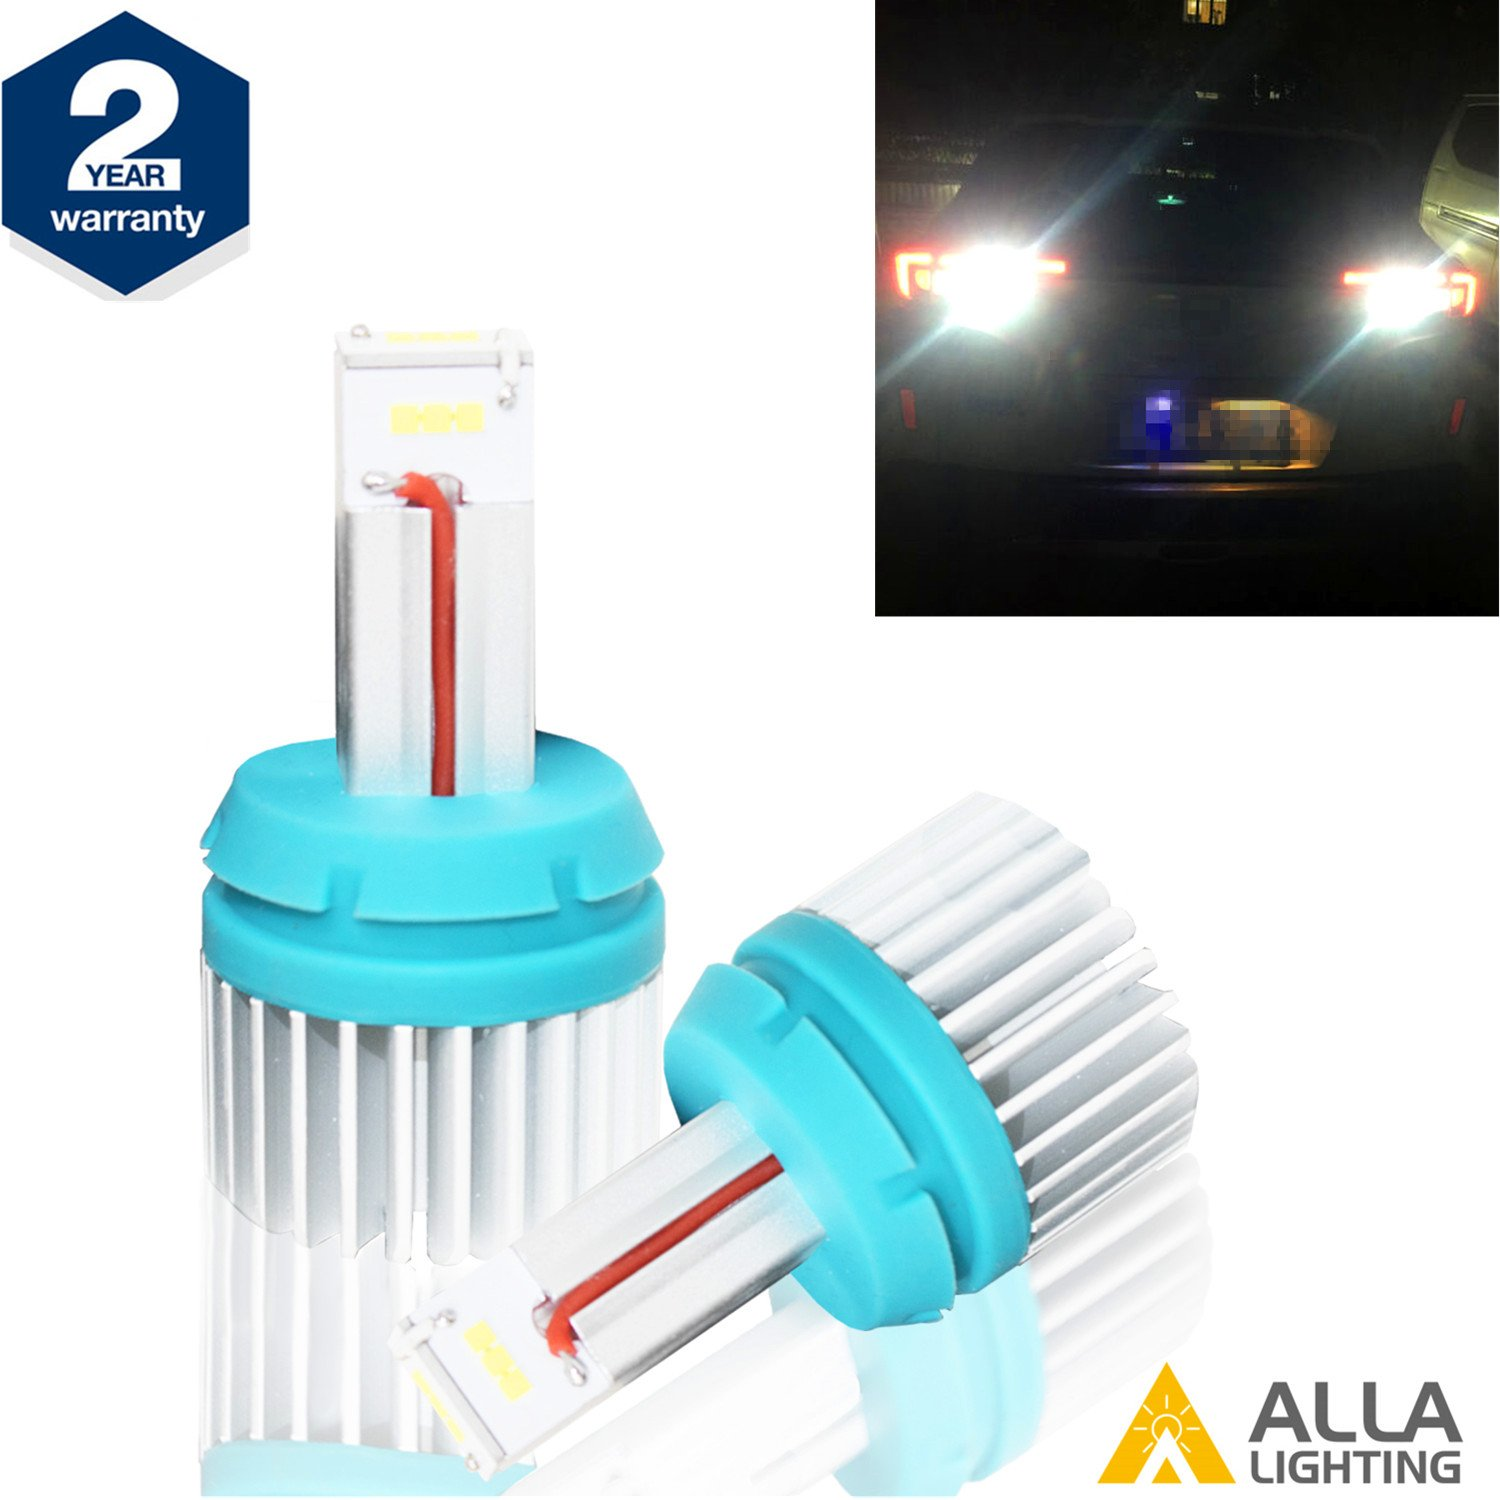 Alla Lighting Brightest 7443 7440 LED Back-Up Reverse Light Bulbs 2400Lm CANBUS 7440 LED Bulb T20 W21W LED Bulbs CSP SMD 7440 LED Back Up Reverse Light for Car Truck RV, 6000K Xenon White (Set of 2)